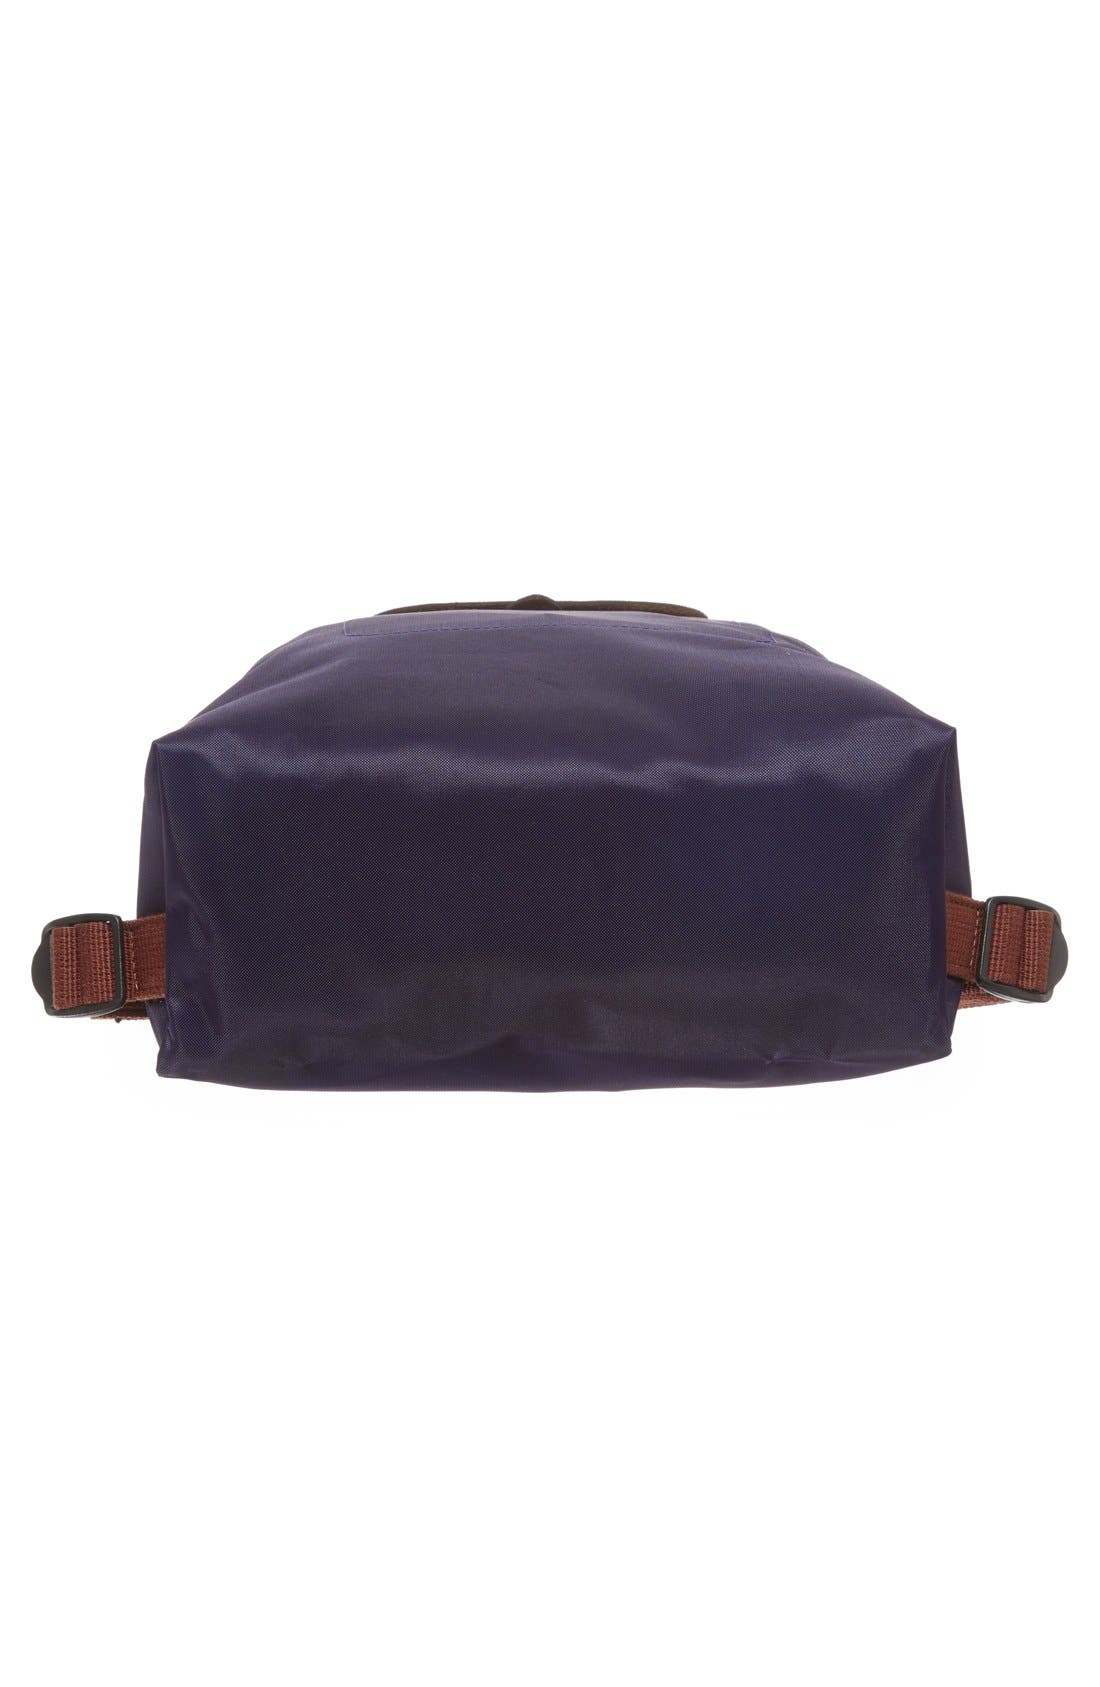 'Le Pliage' Backpack,                             Alternate thumbnail 6, color,                             Bilberry